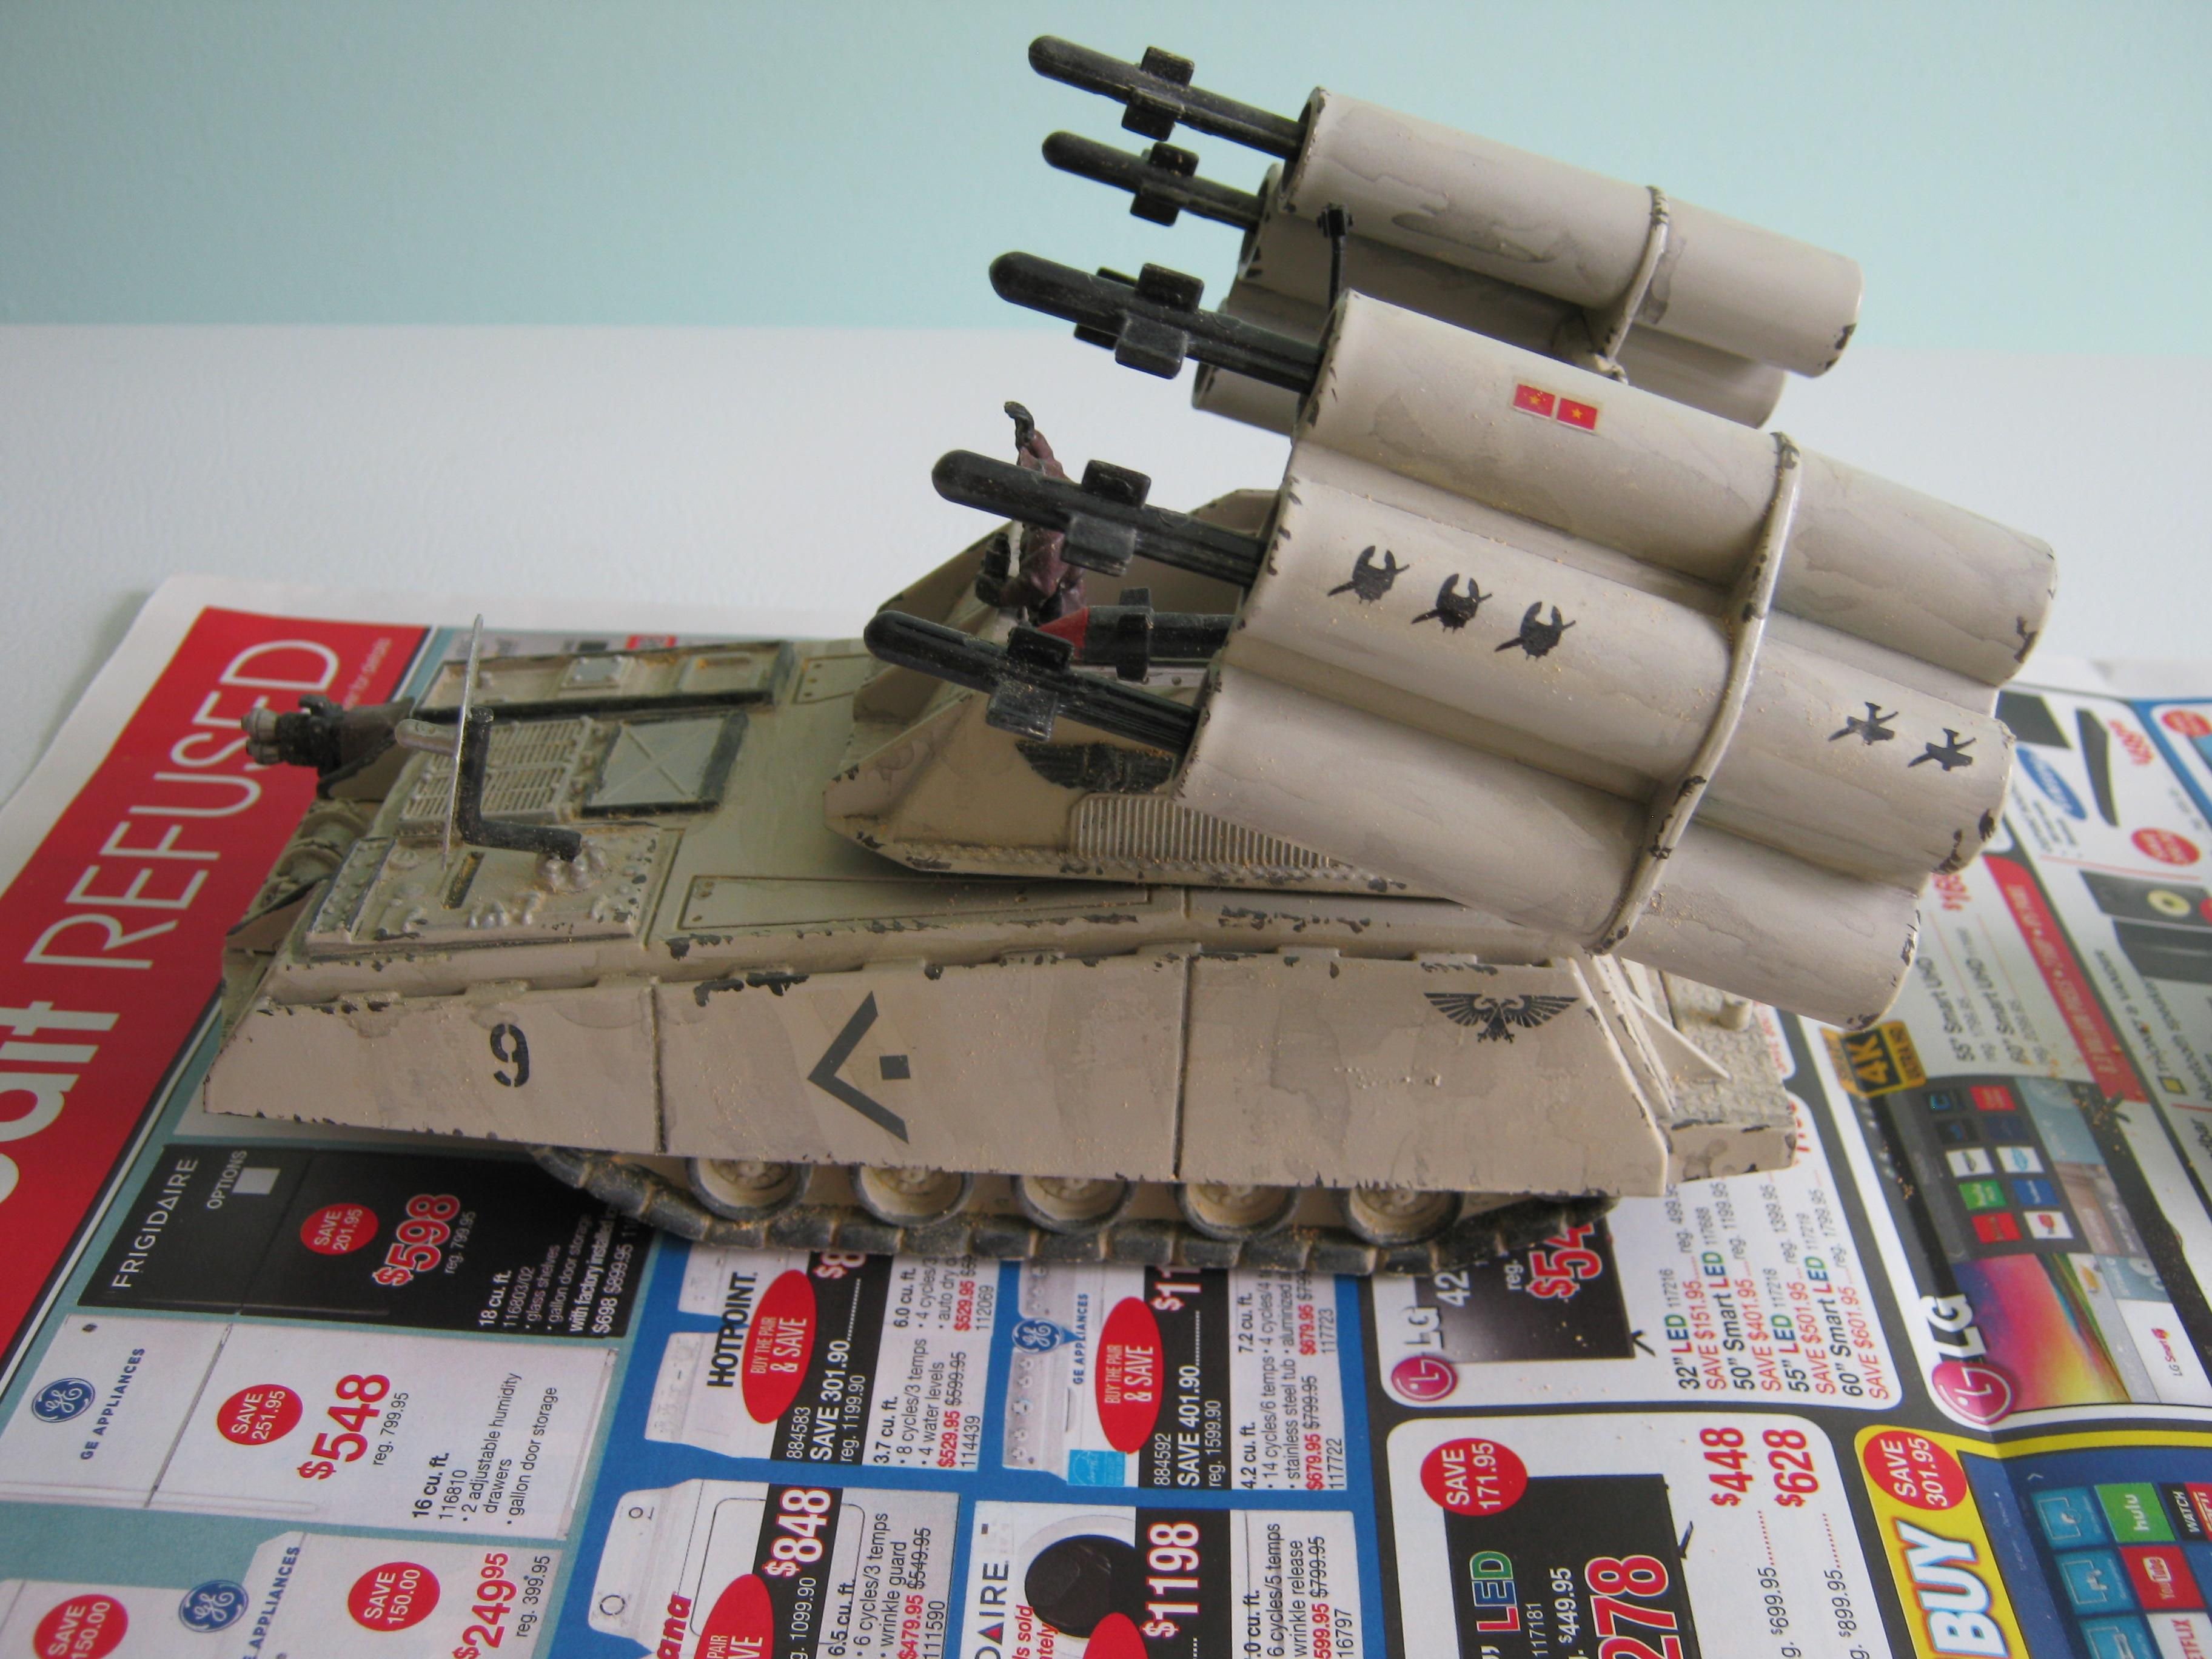 Adv, Afv, Air Defense Vehicle, Anti-aircraft, Armadillo, Artillery, Conversion, G.i. Joe, Imperial, Missile Launcher, Relic, Sam System, Self Propelled, Surface To Air Missile, Tank, Toy